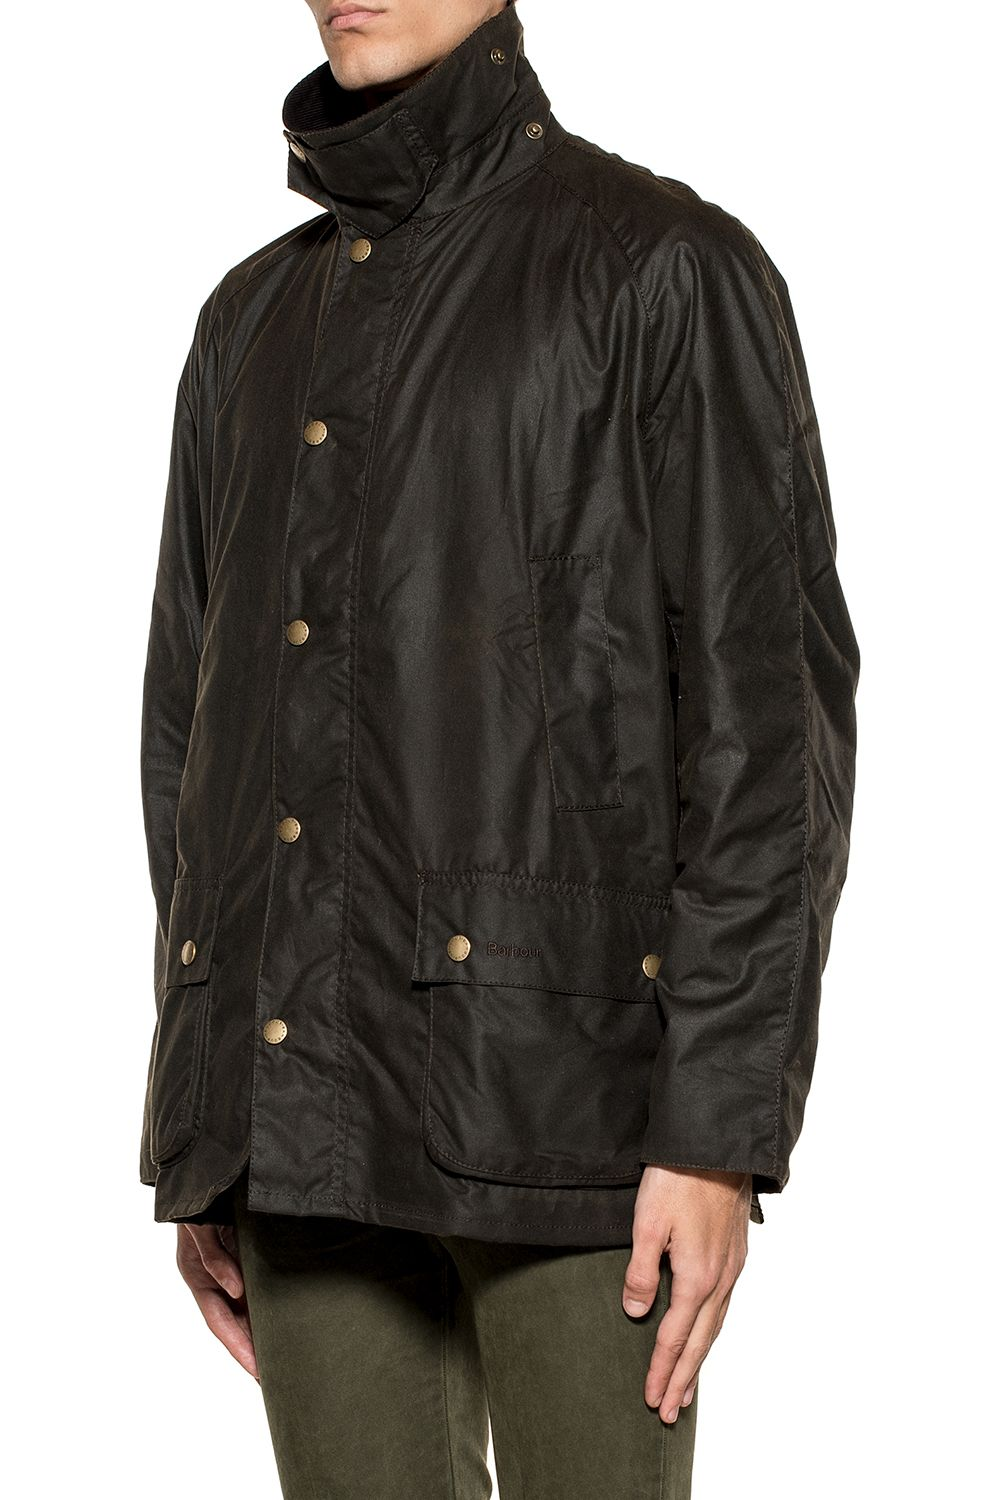 Italist Best Price In The Market For Barbour Barbour